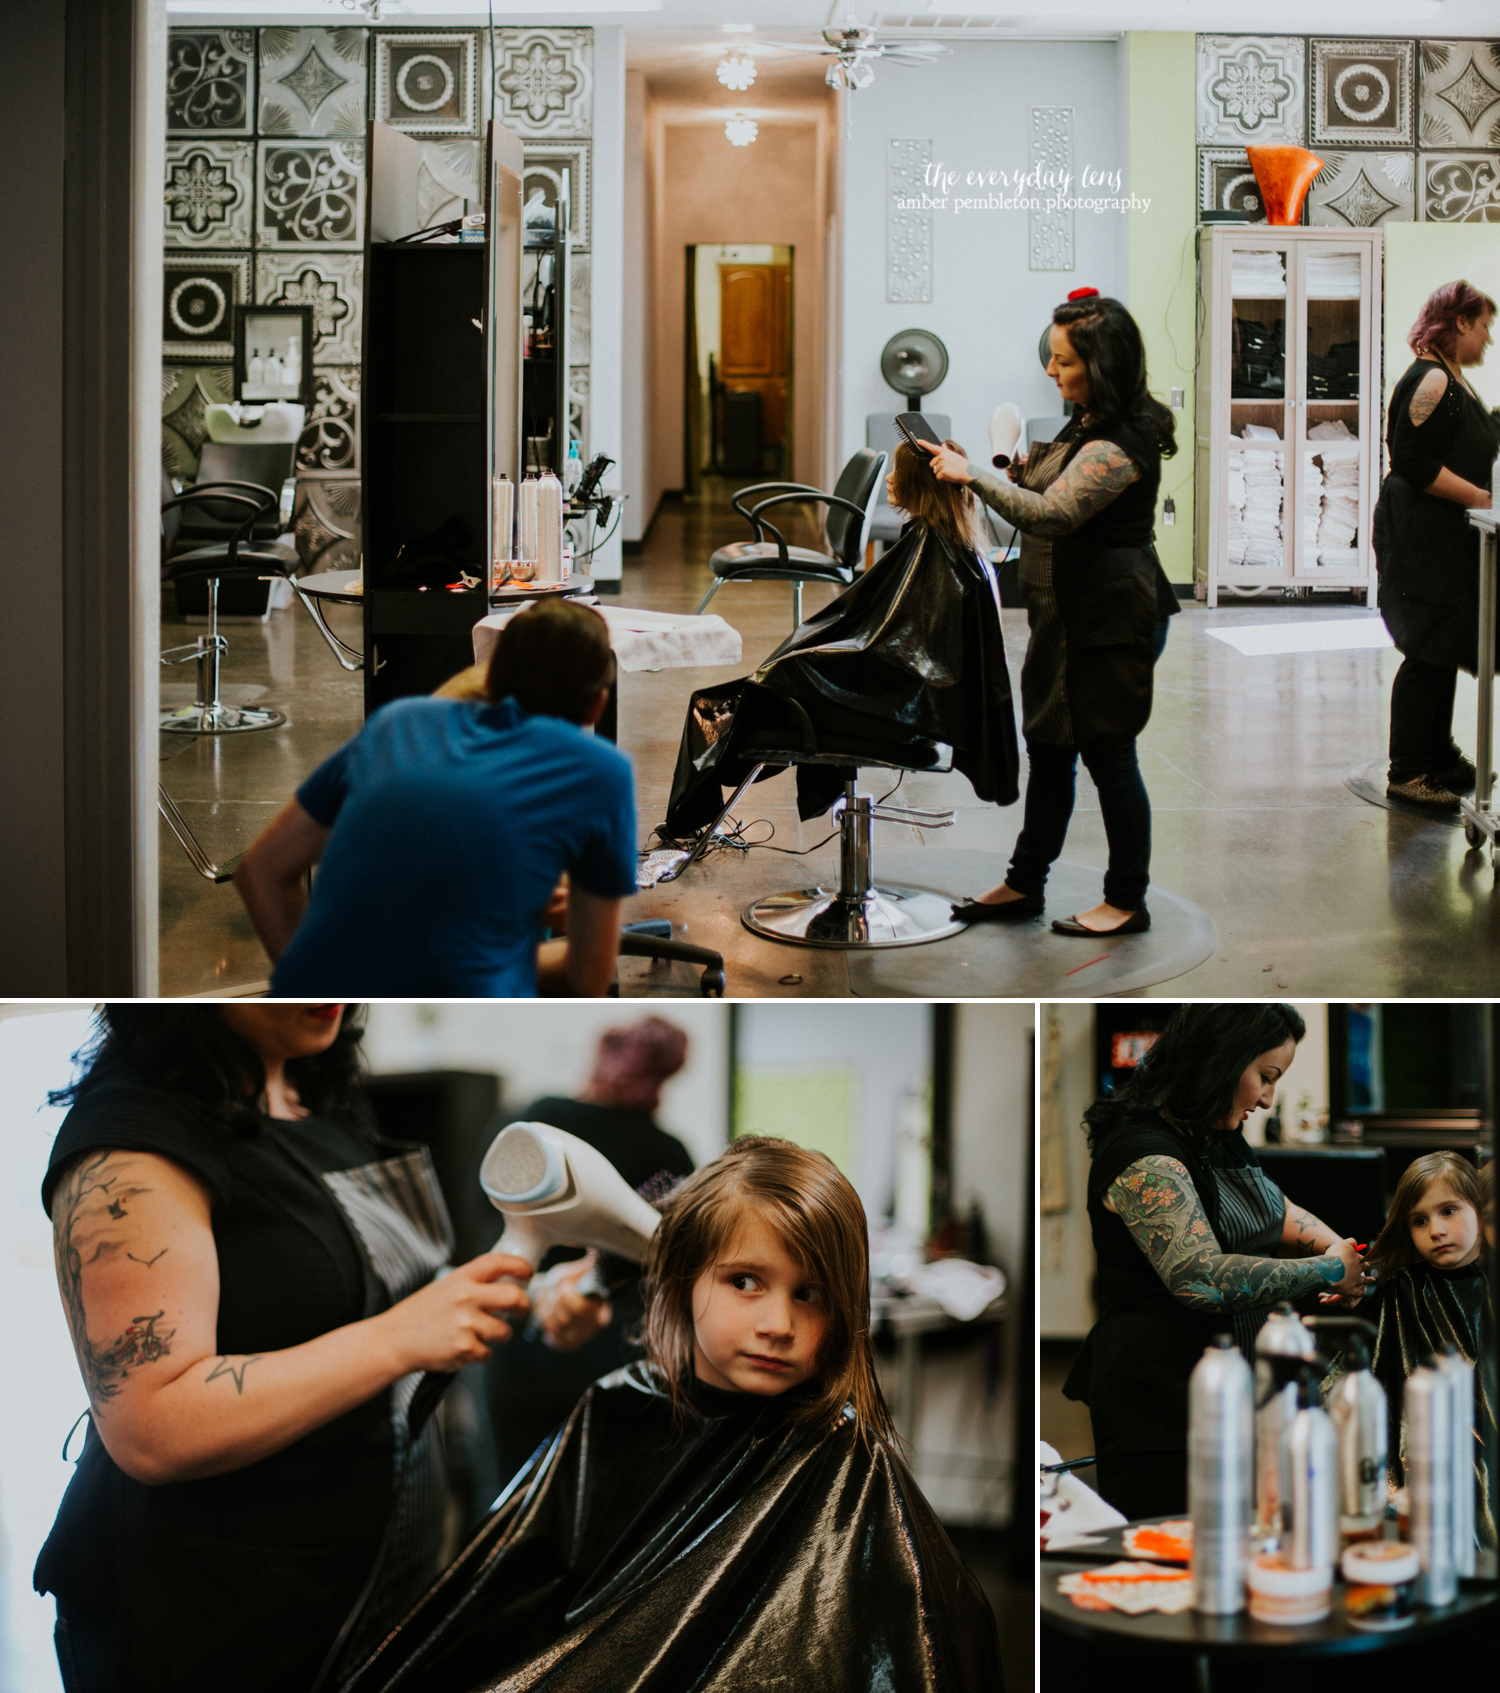 salon-haircut-child.jpg